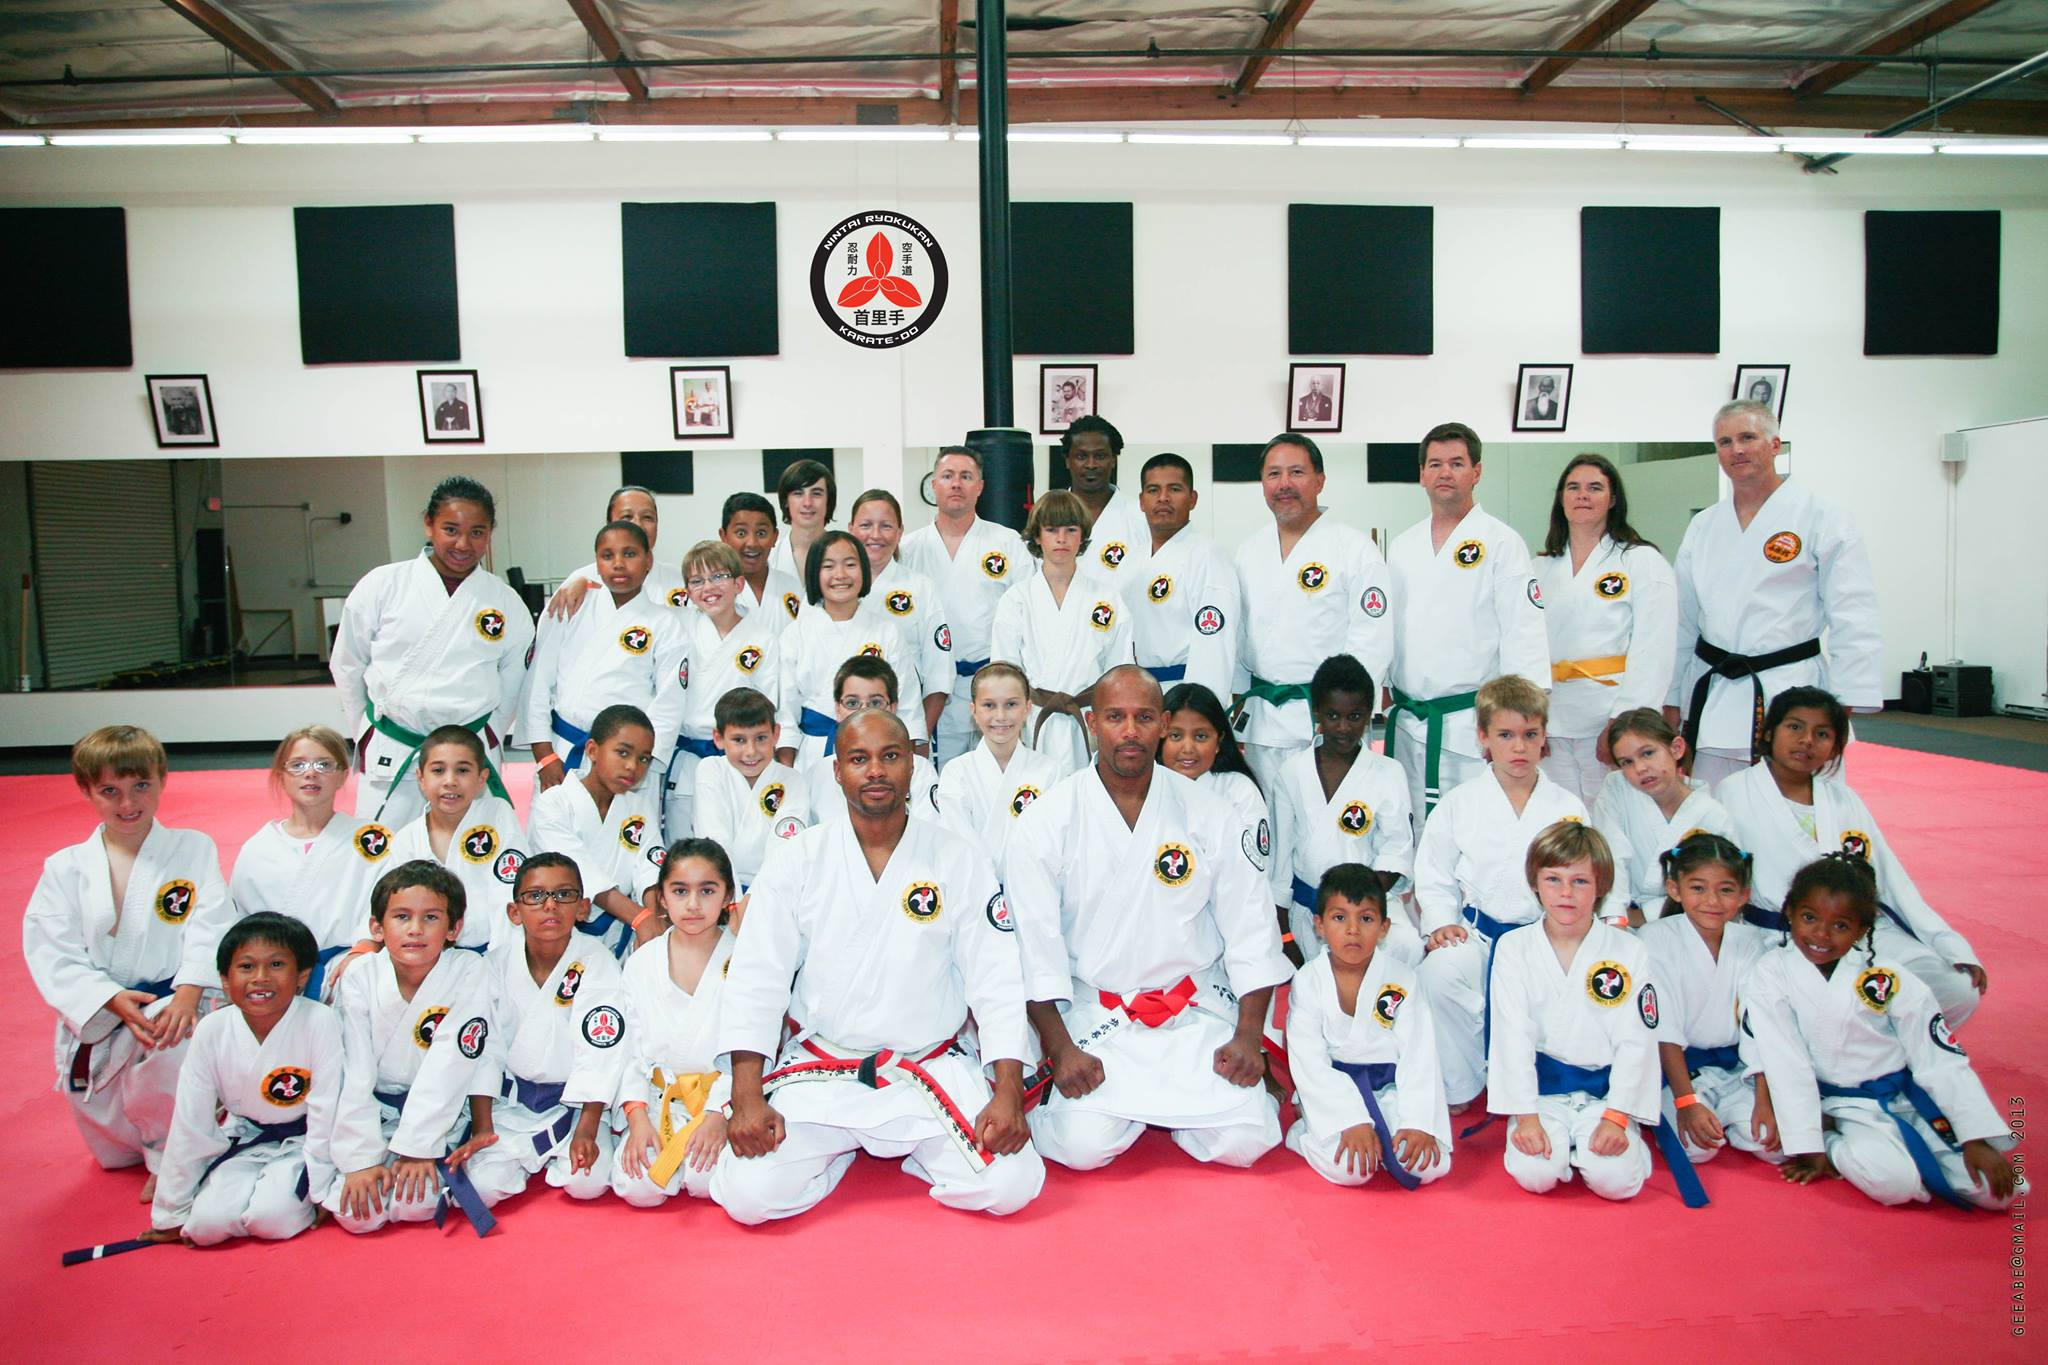 NRK KARATE IS A FAMILY ENVIRONMENT